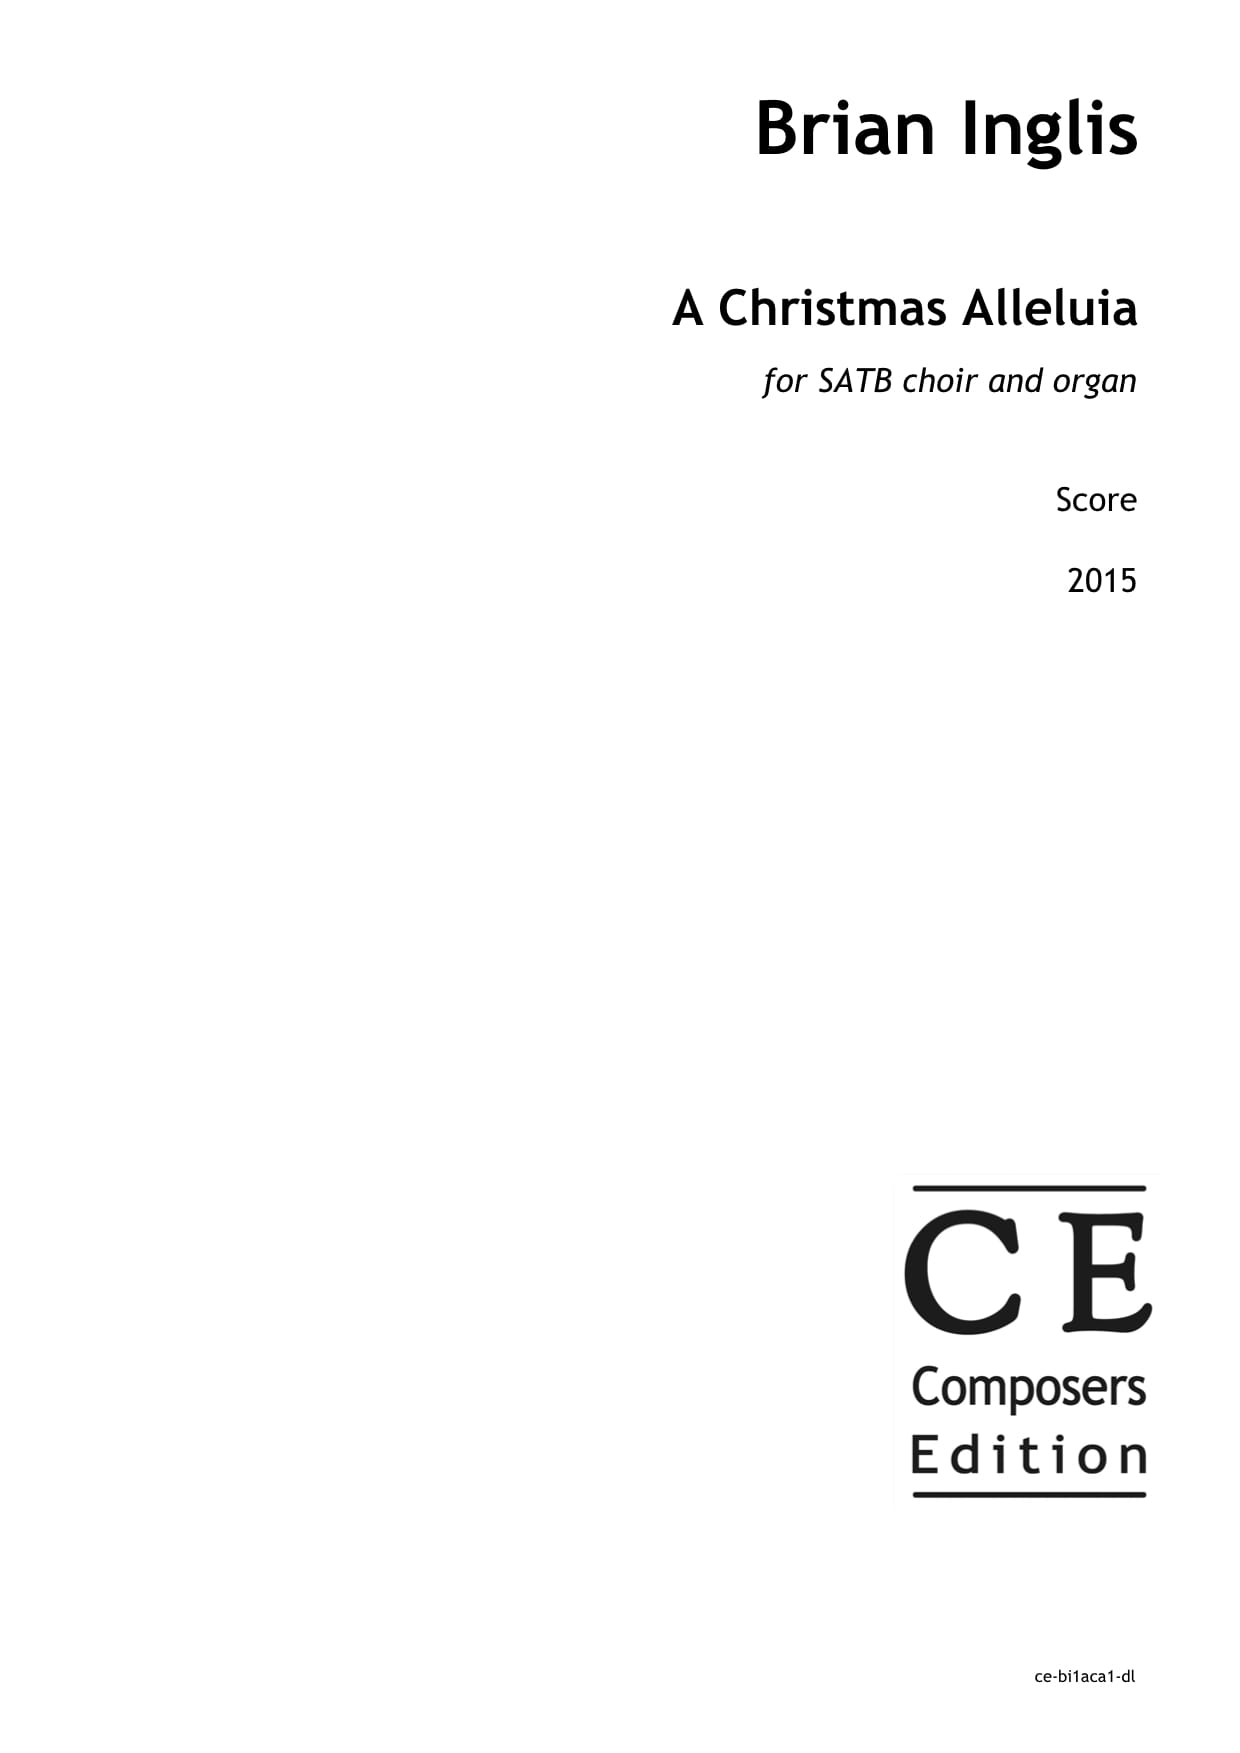 Brian Inglis: A Christmas Alleluia for SATB choir and organ